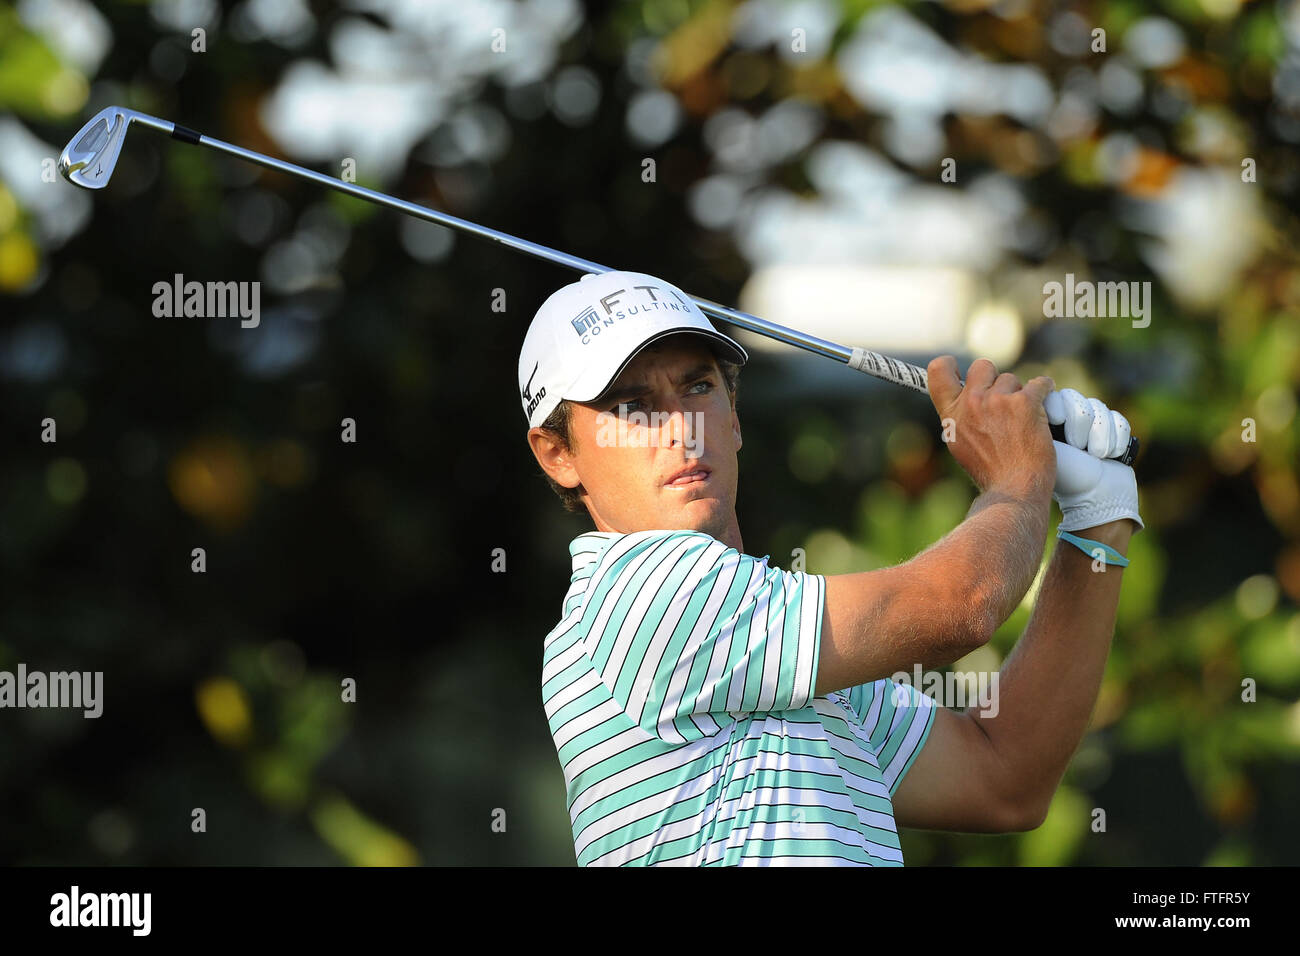 March 23, 2012 - Orlando, Fla, USA - Charles Howell III during the